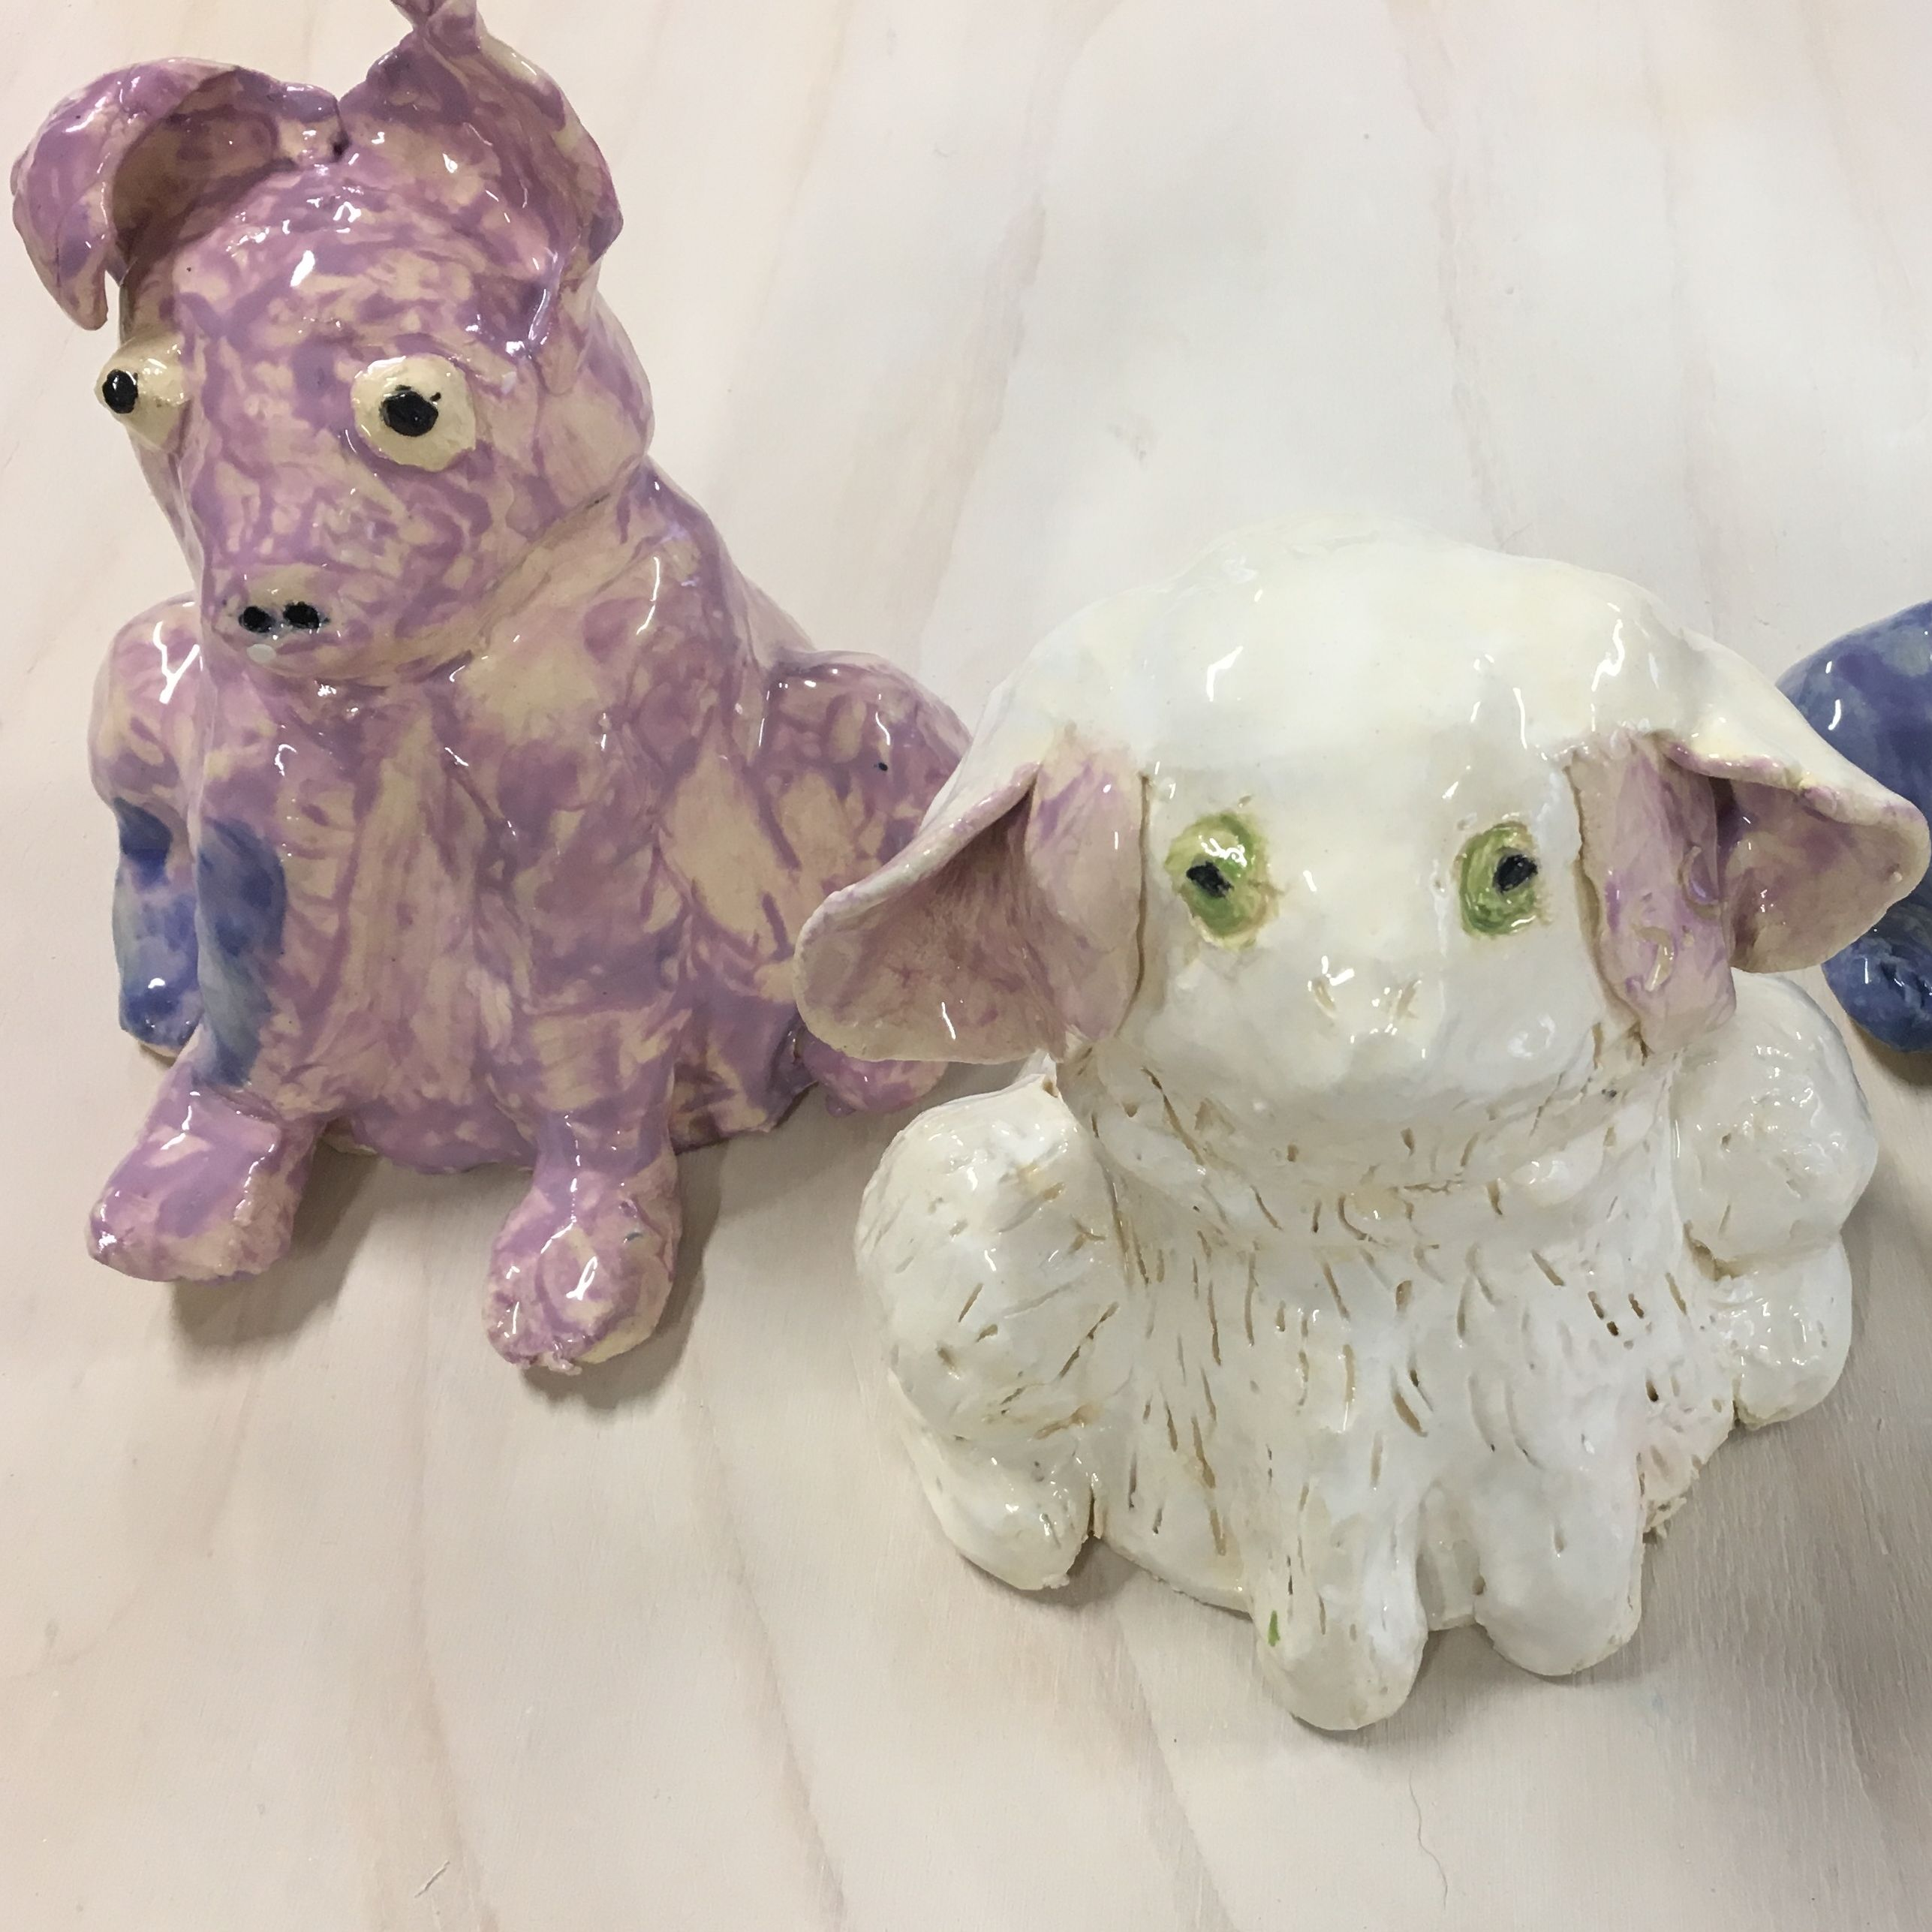 Ceramics | Cats + Dogs  | 8-12  years